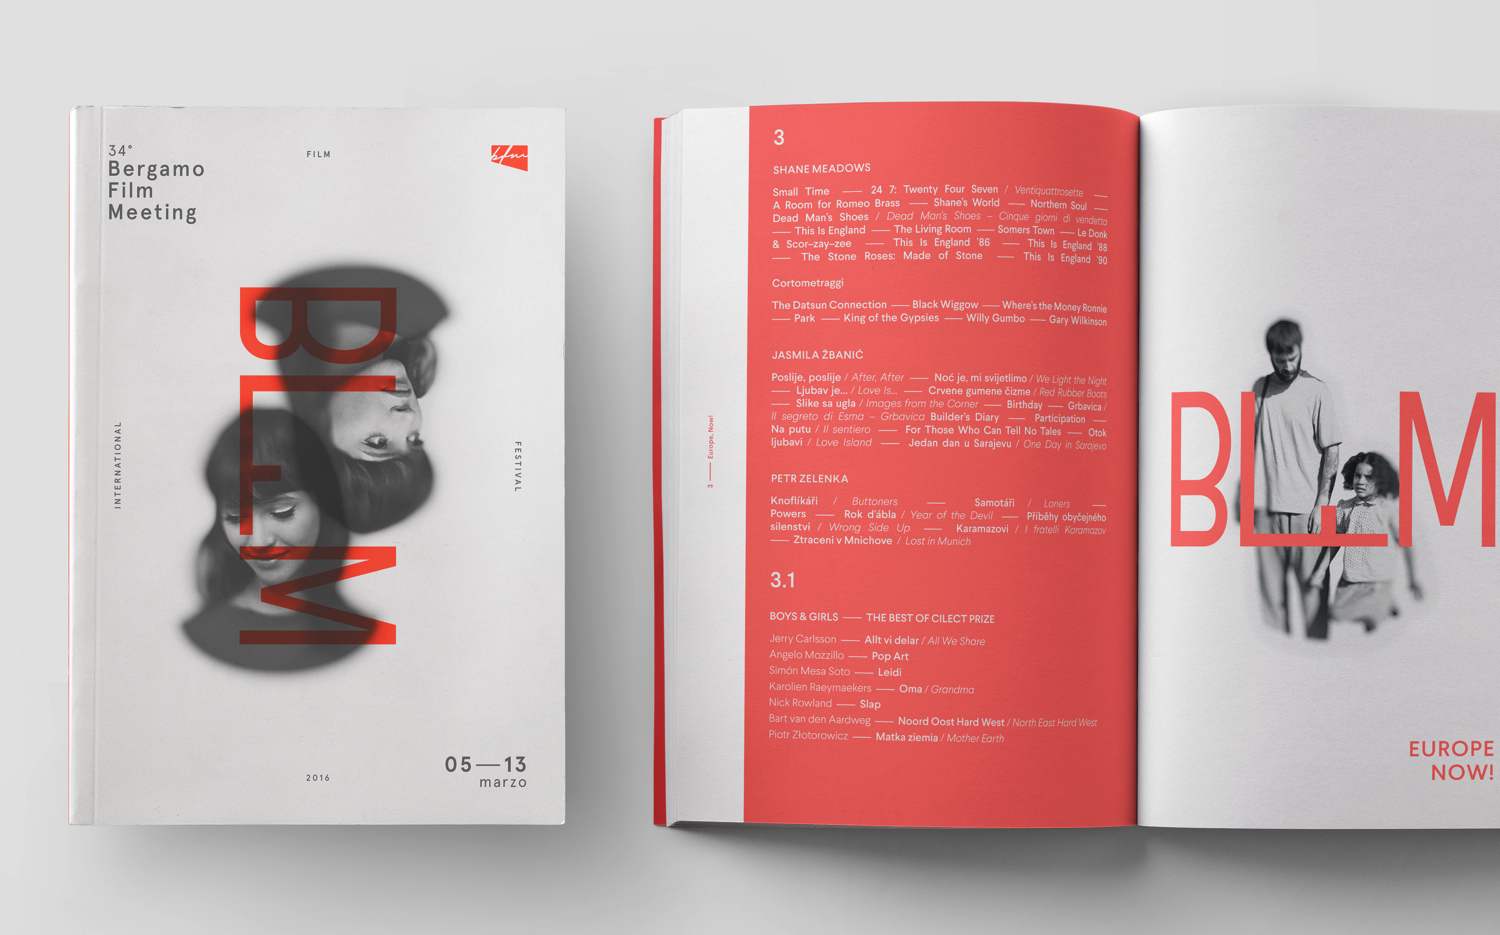 bfm_catalogue_01